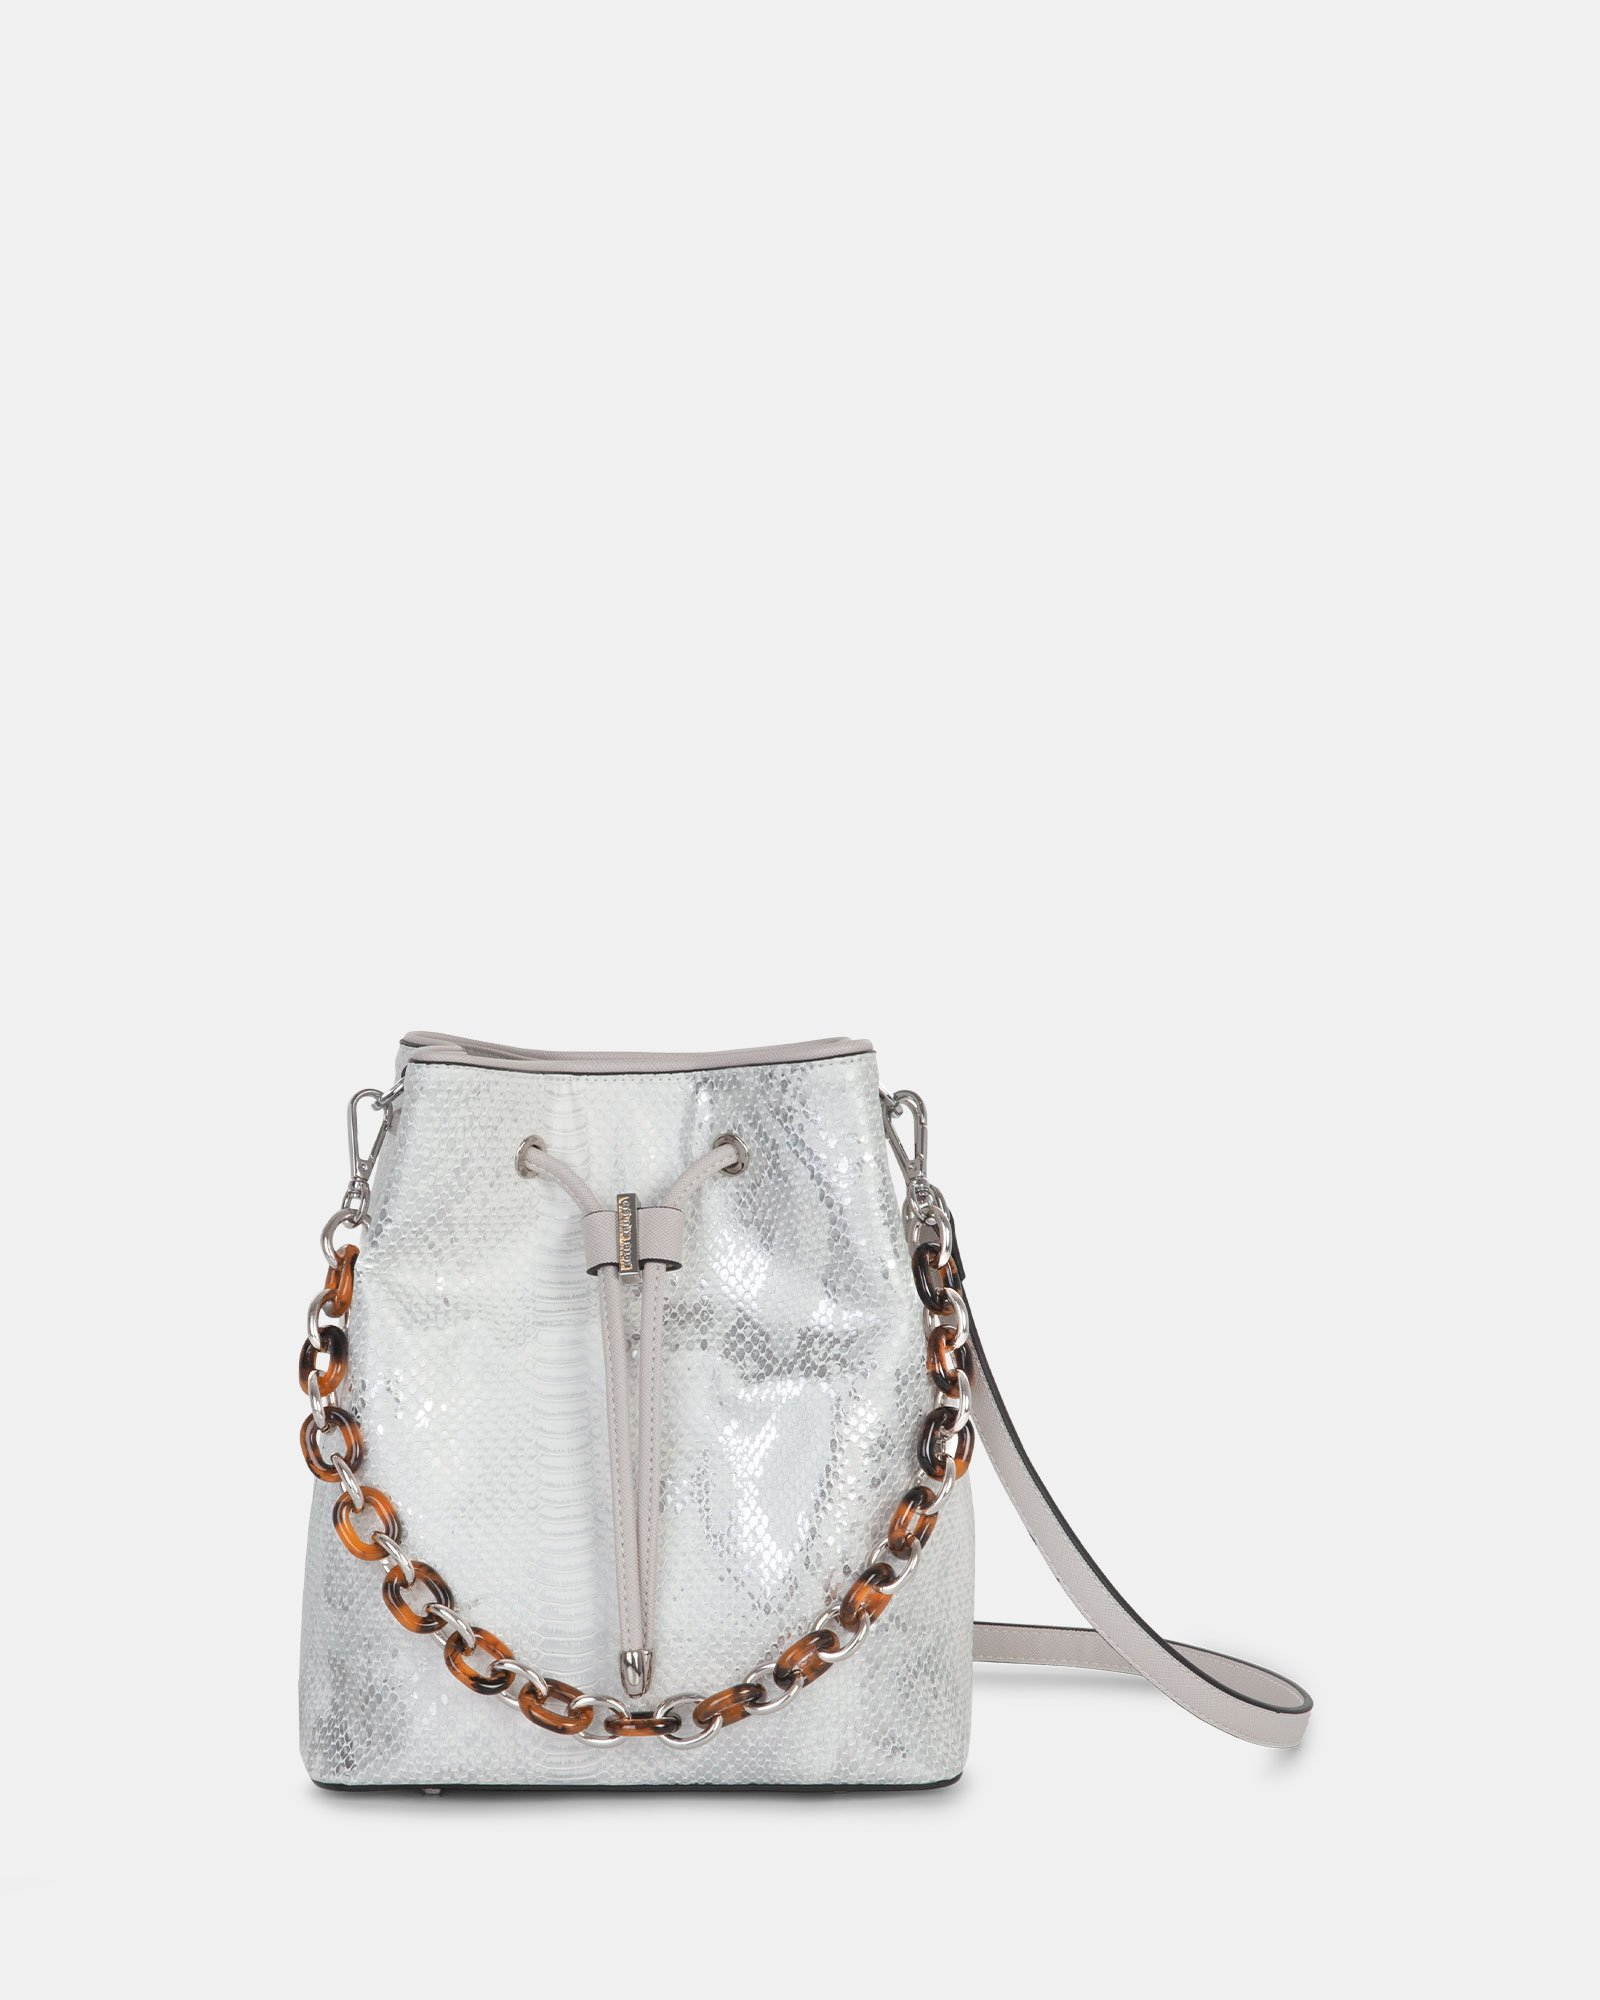 Duo - Satchel with adjustable and detachable crossbody strap - white/snake - Céline Dion - Zoom